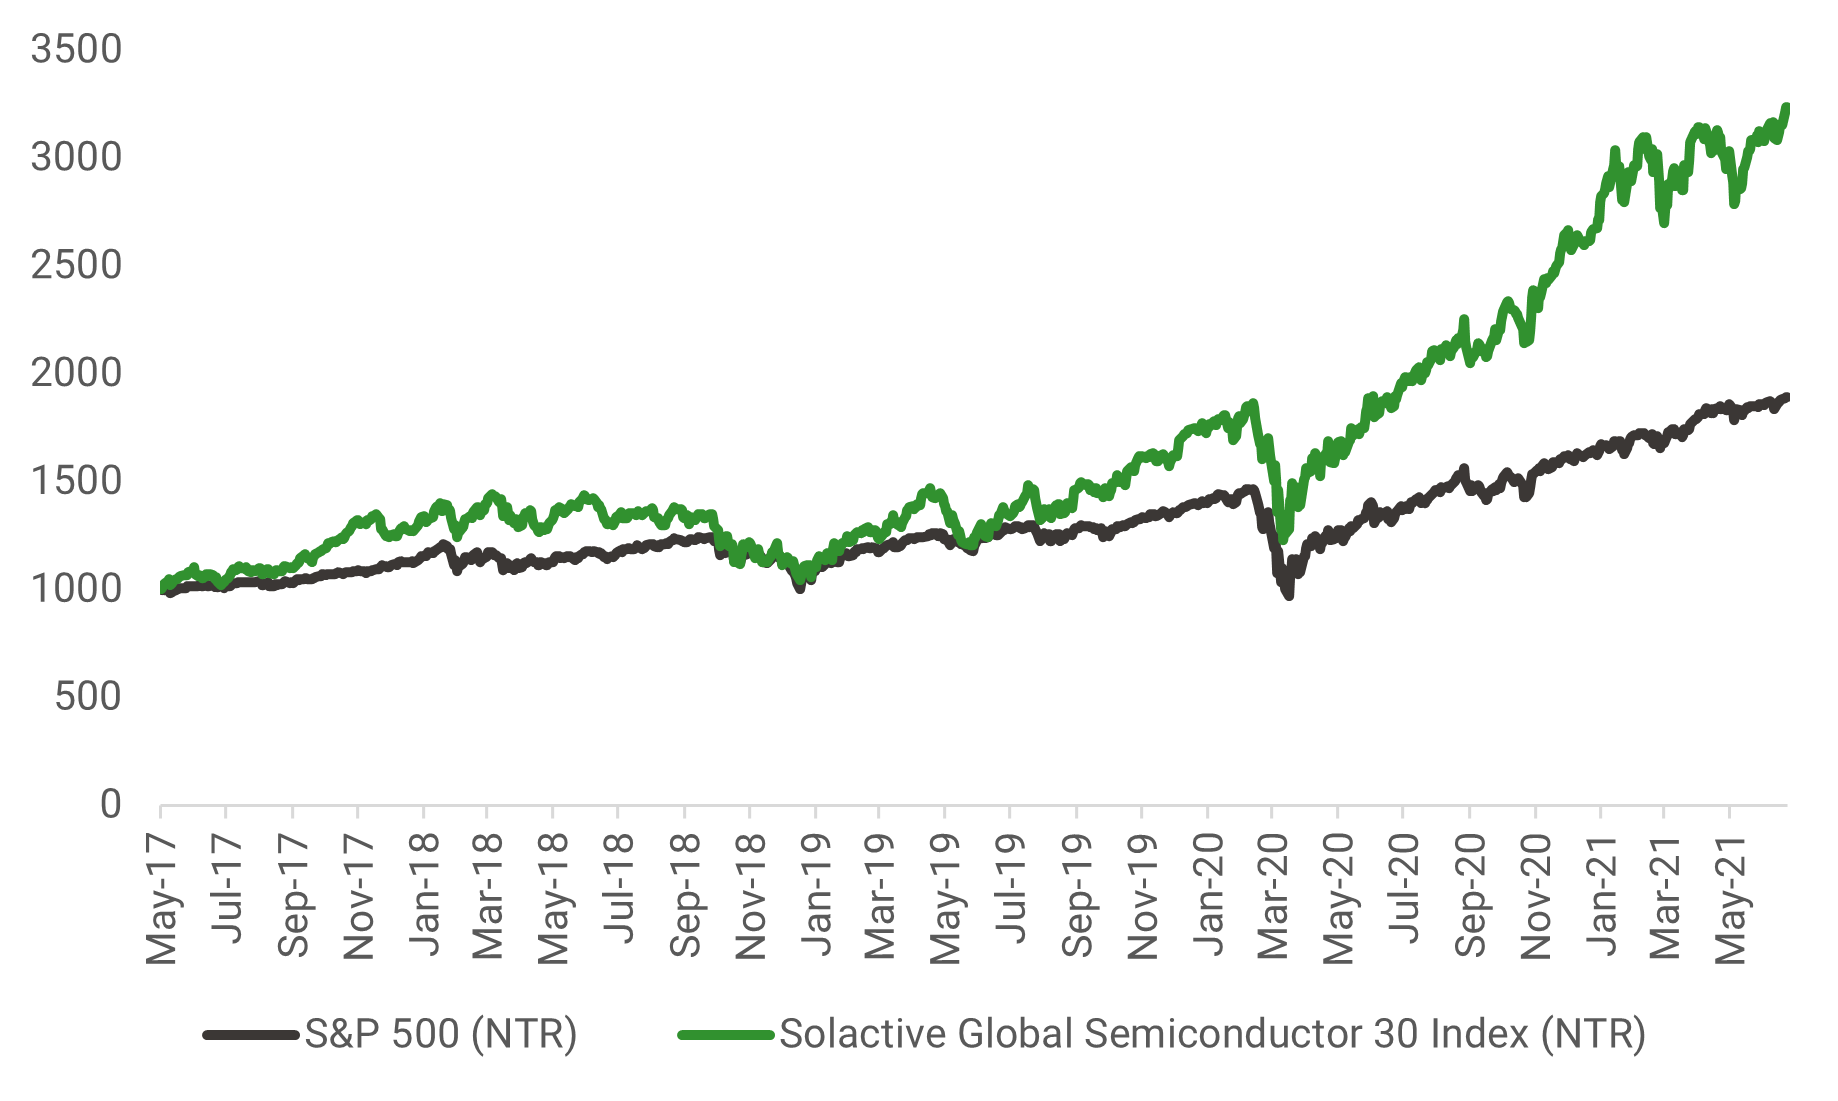 Semiconductors_have_strongly_outperformed_2f655e5b5c.png